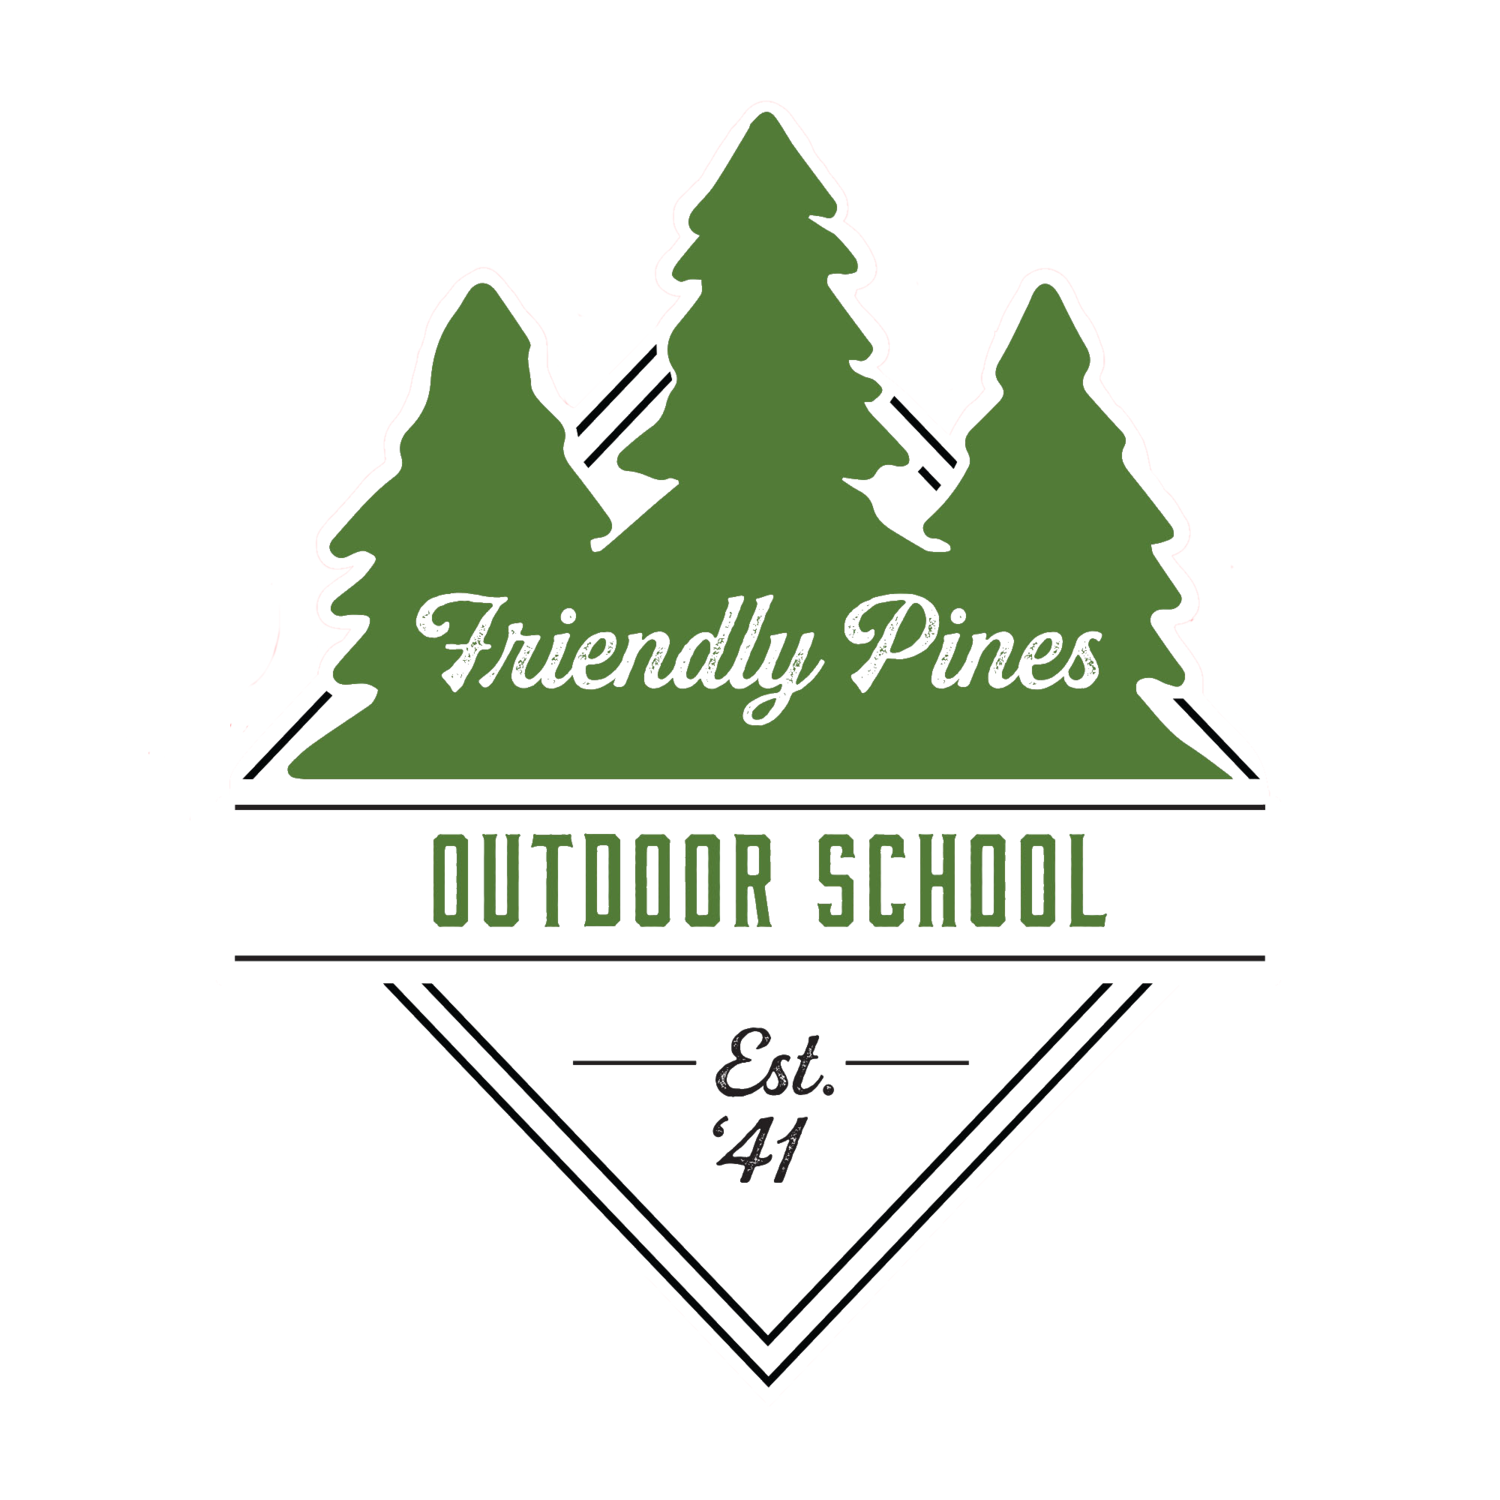 Science Camp - Friendly Pines Outdoor School